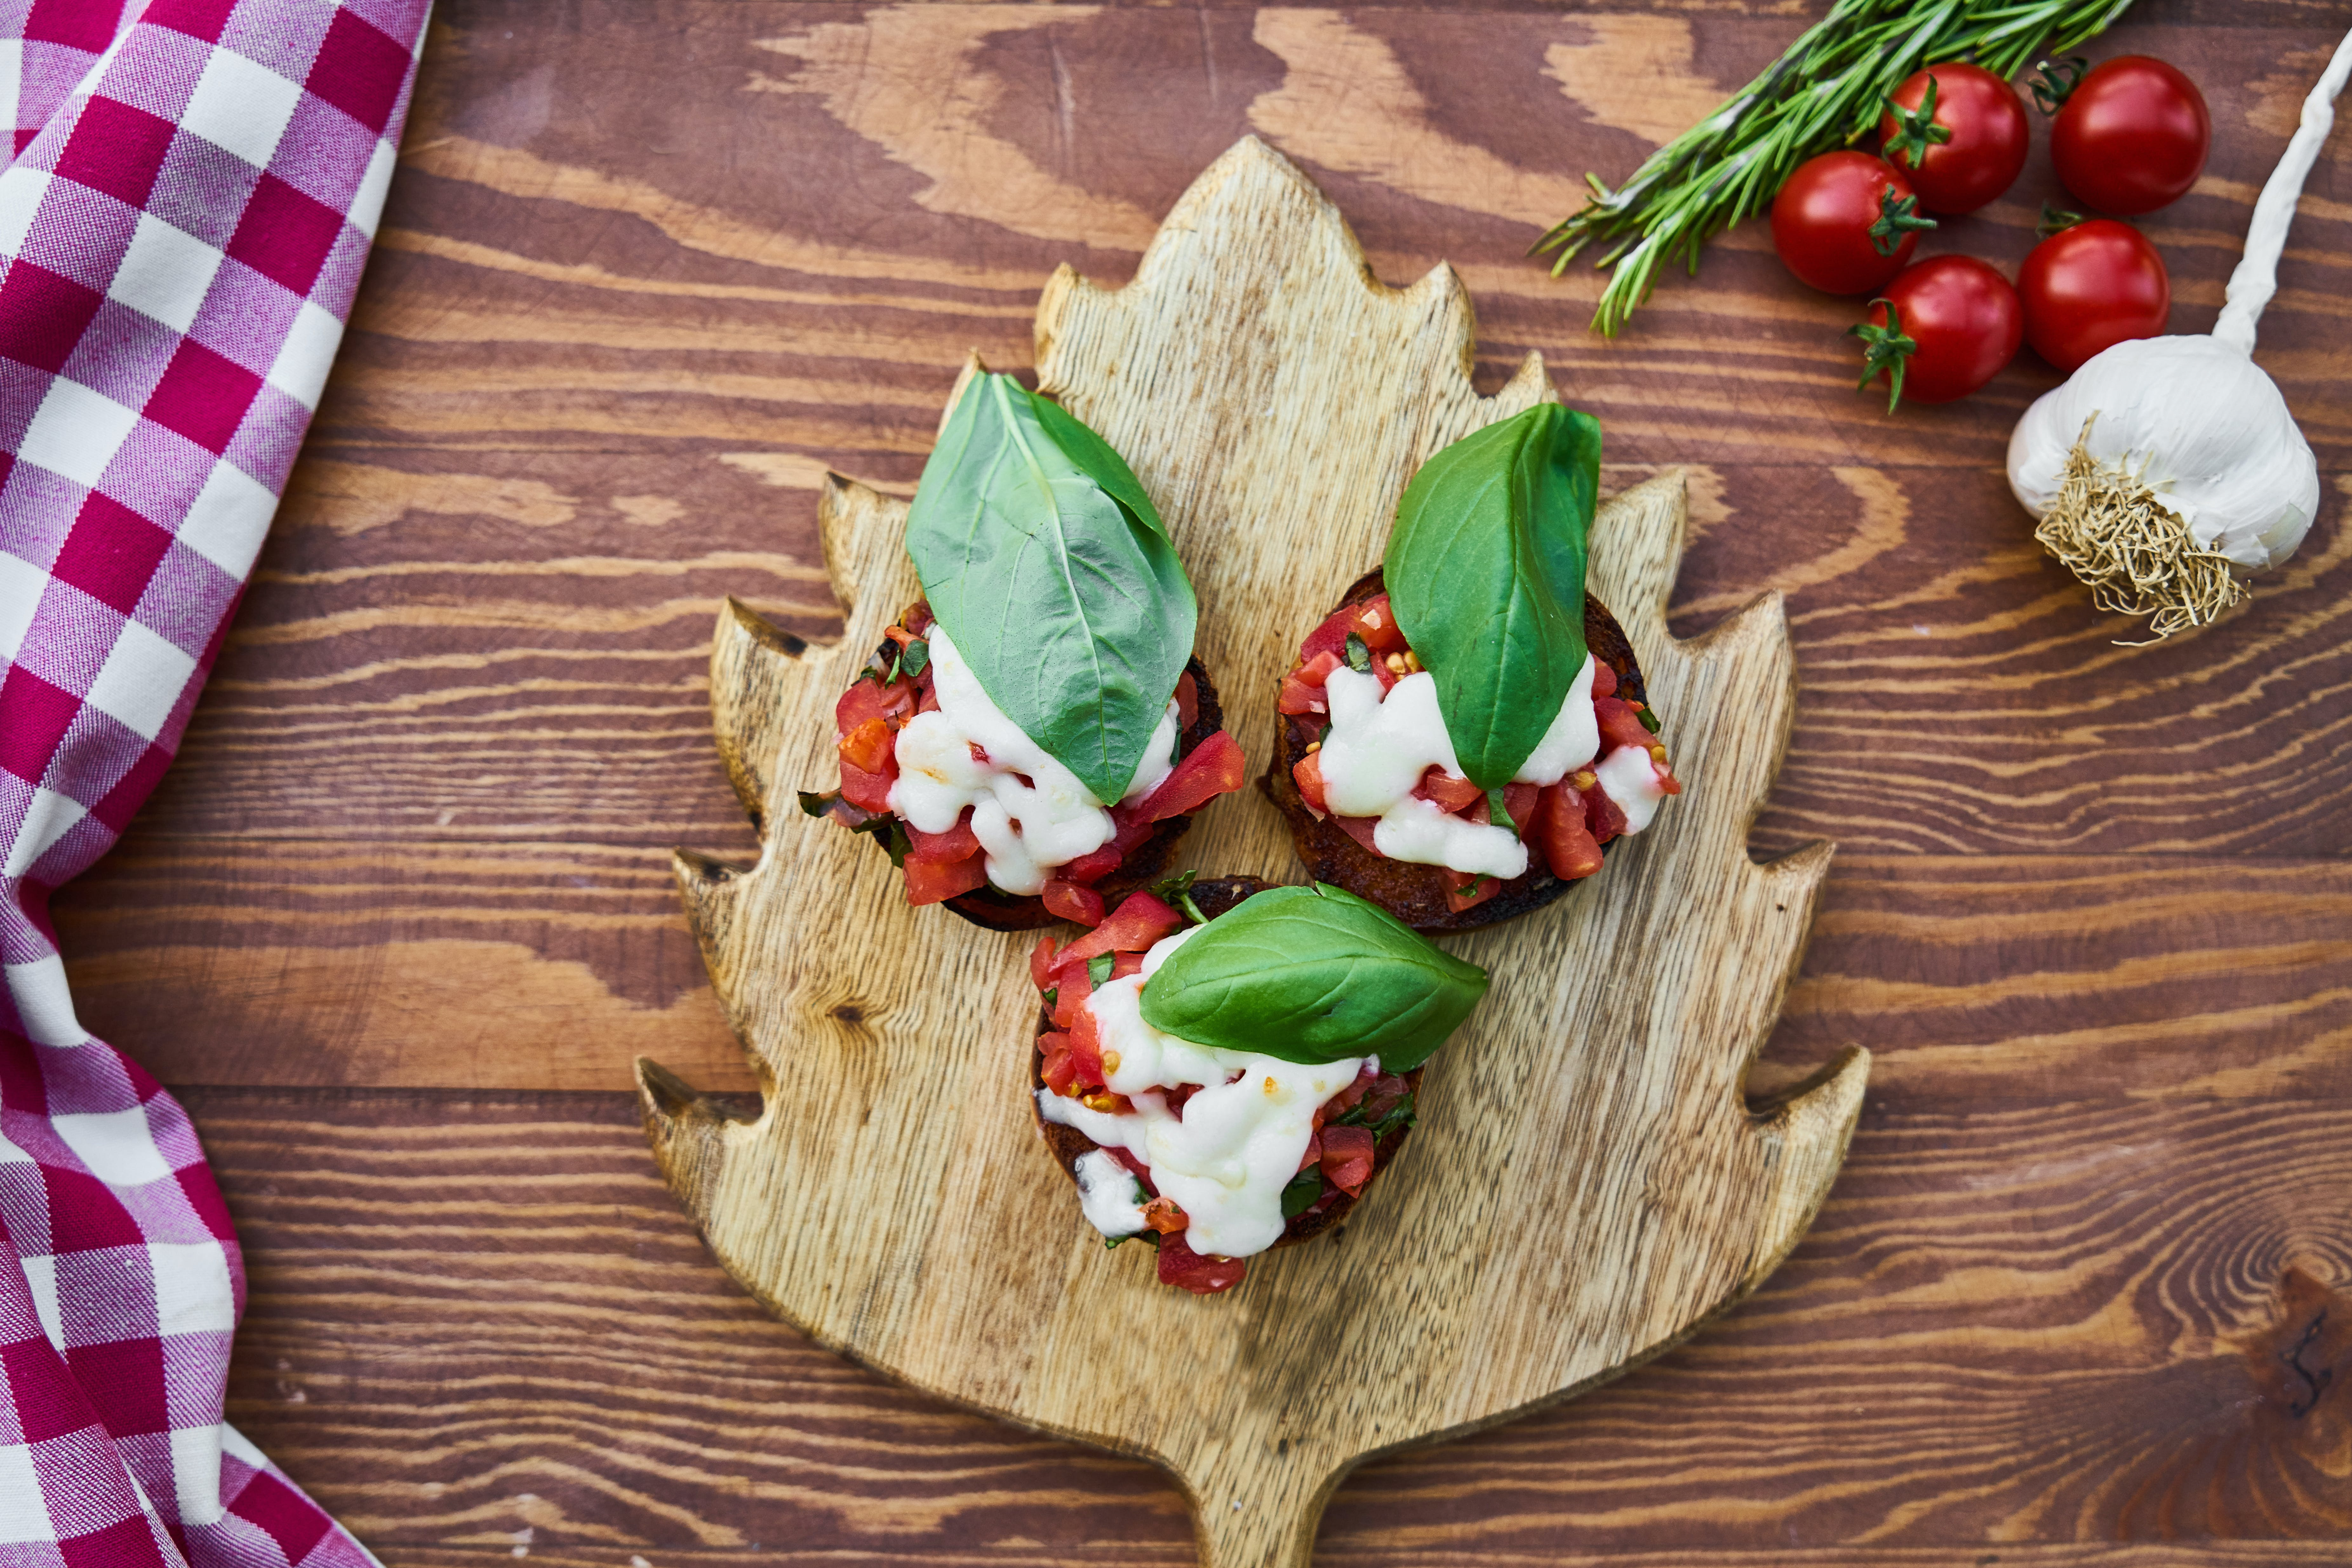 Three Tomato Dishes on Brown Wooden Chopping Board